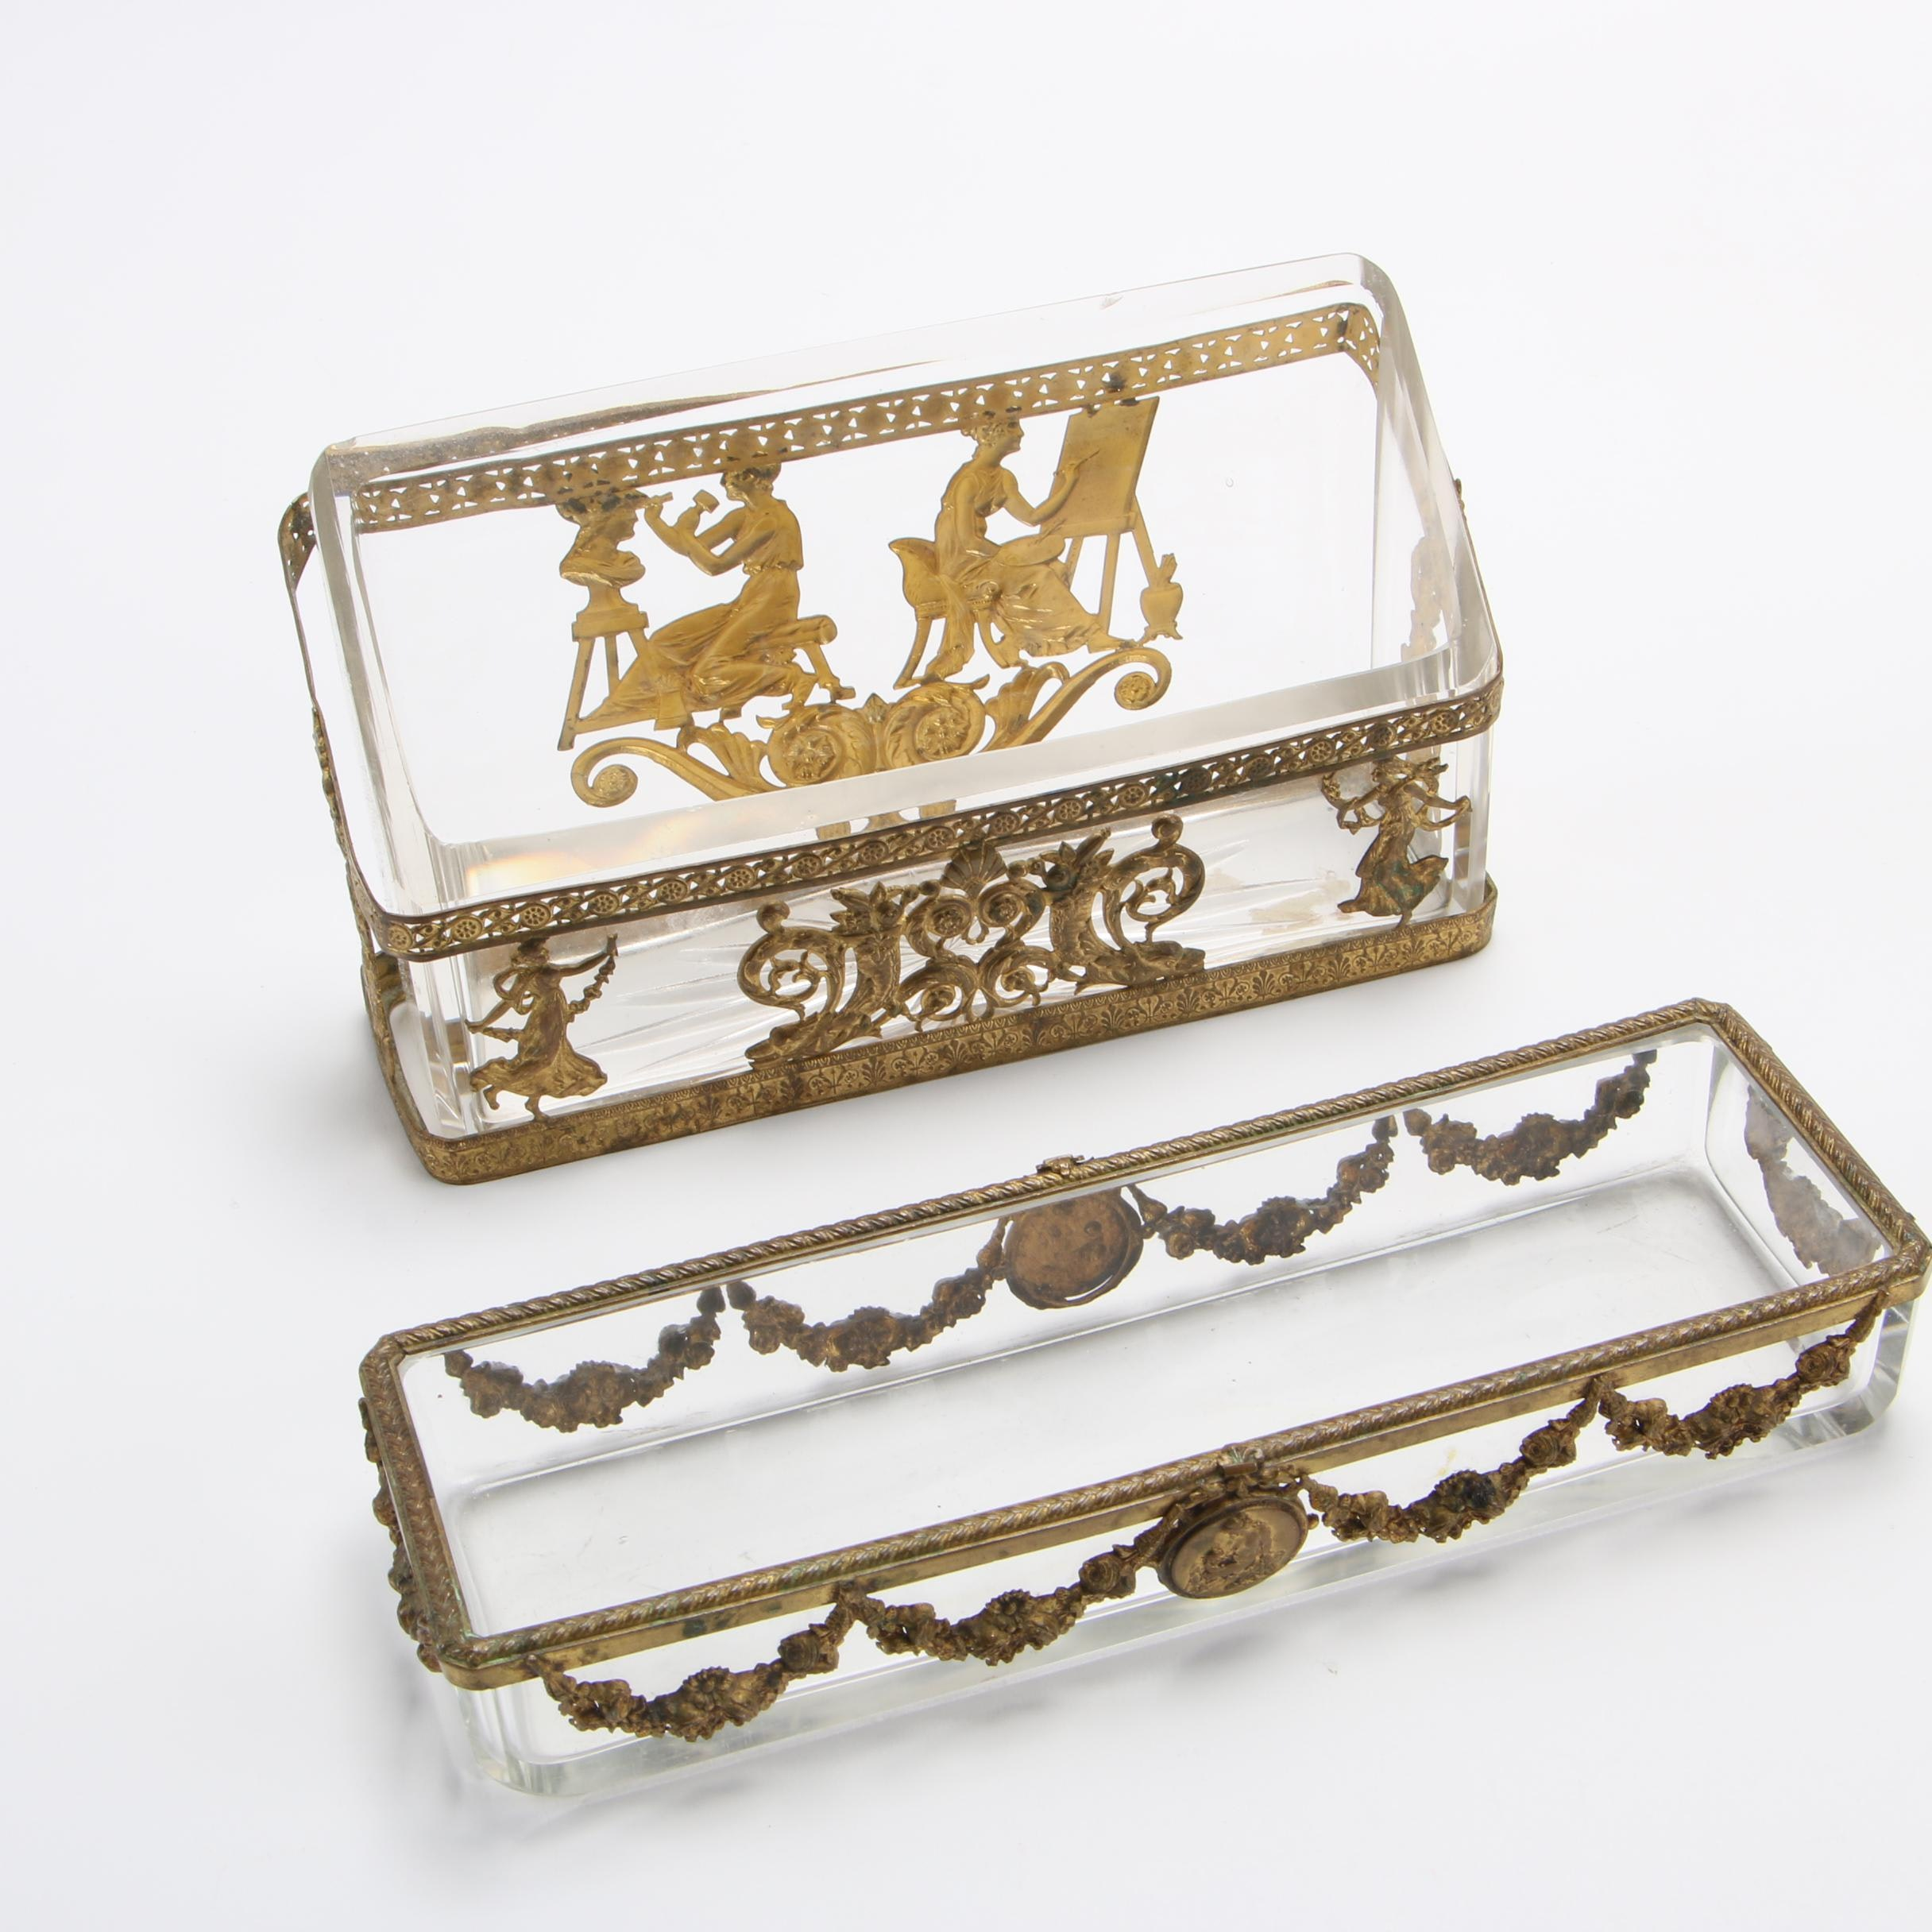 Metal and Cut Glass Neoclassical Style Desk Accessories